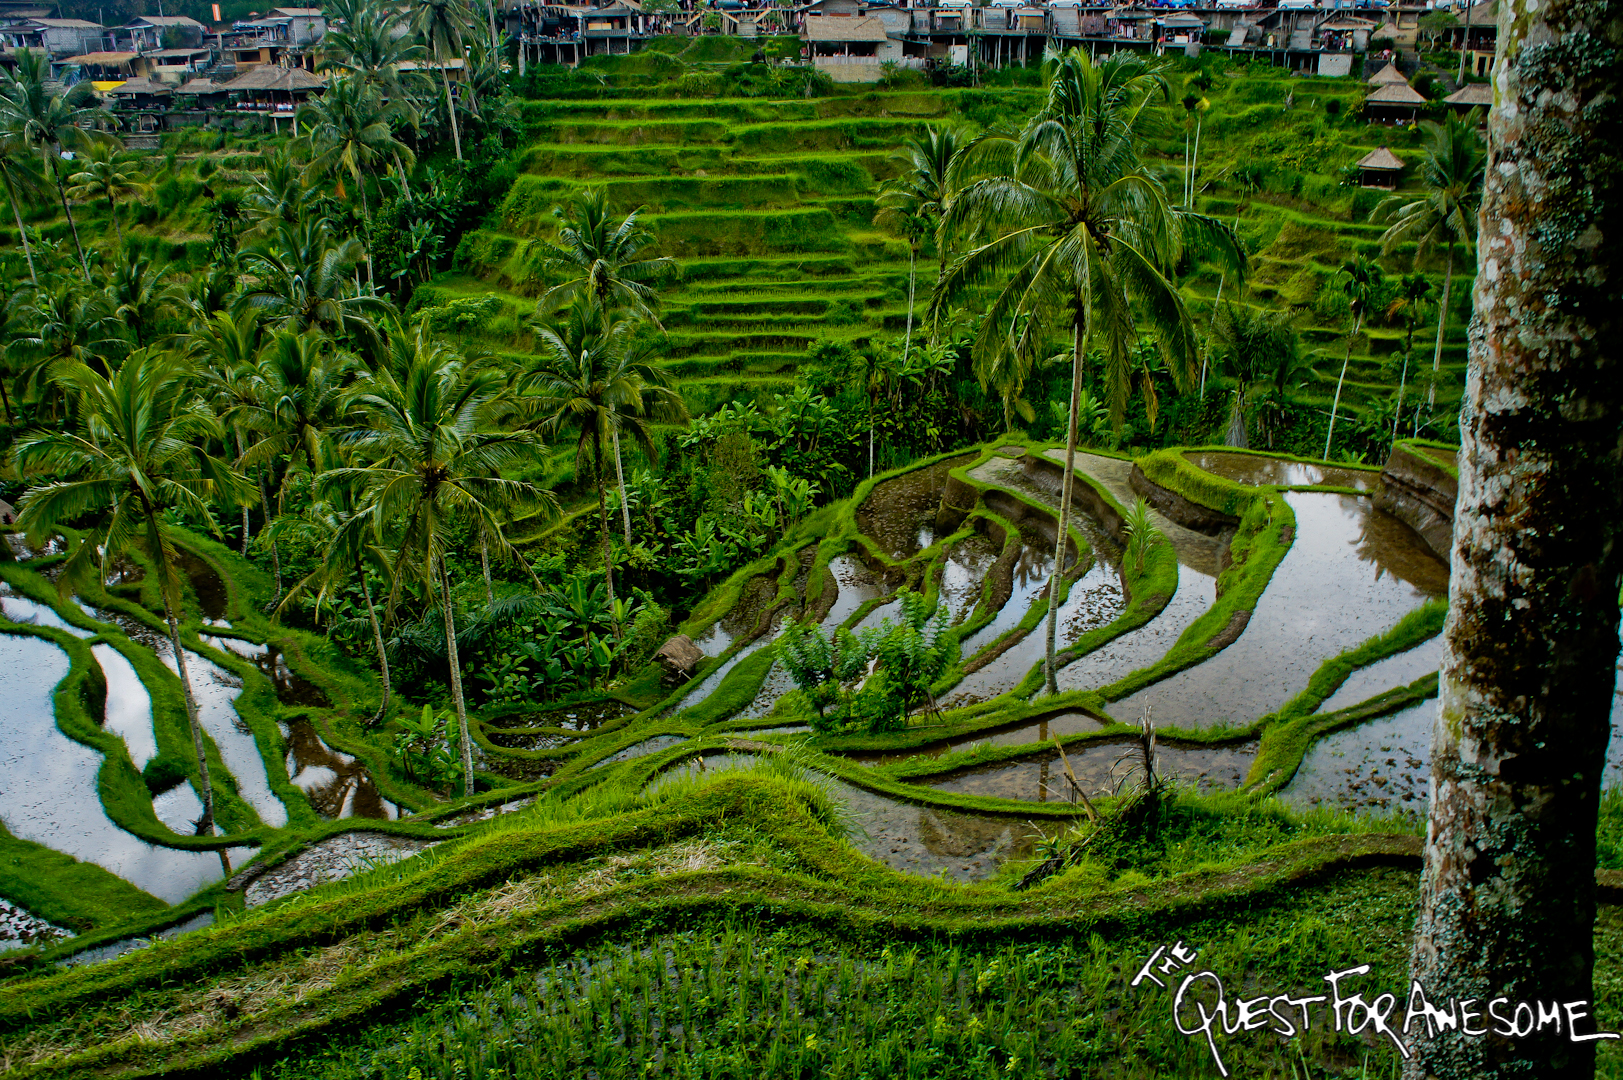 The Top 20 Photos from my Trip to Bali and Lombok, Indonesia